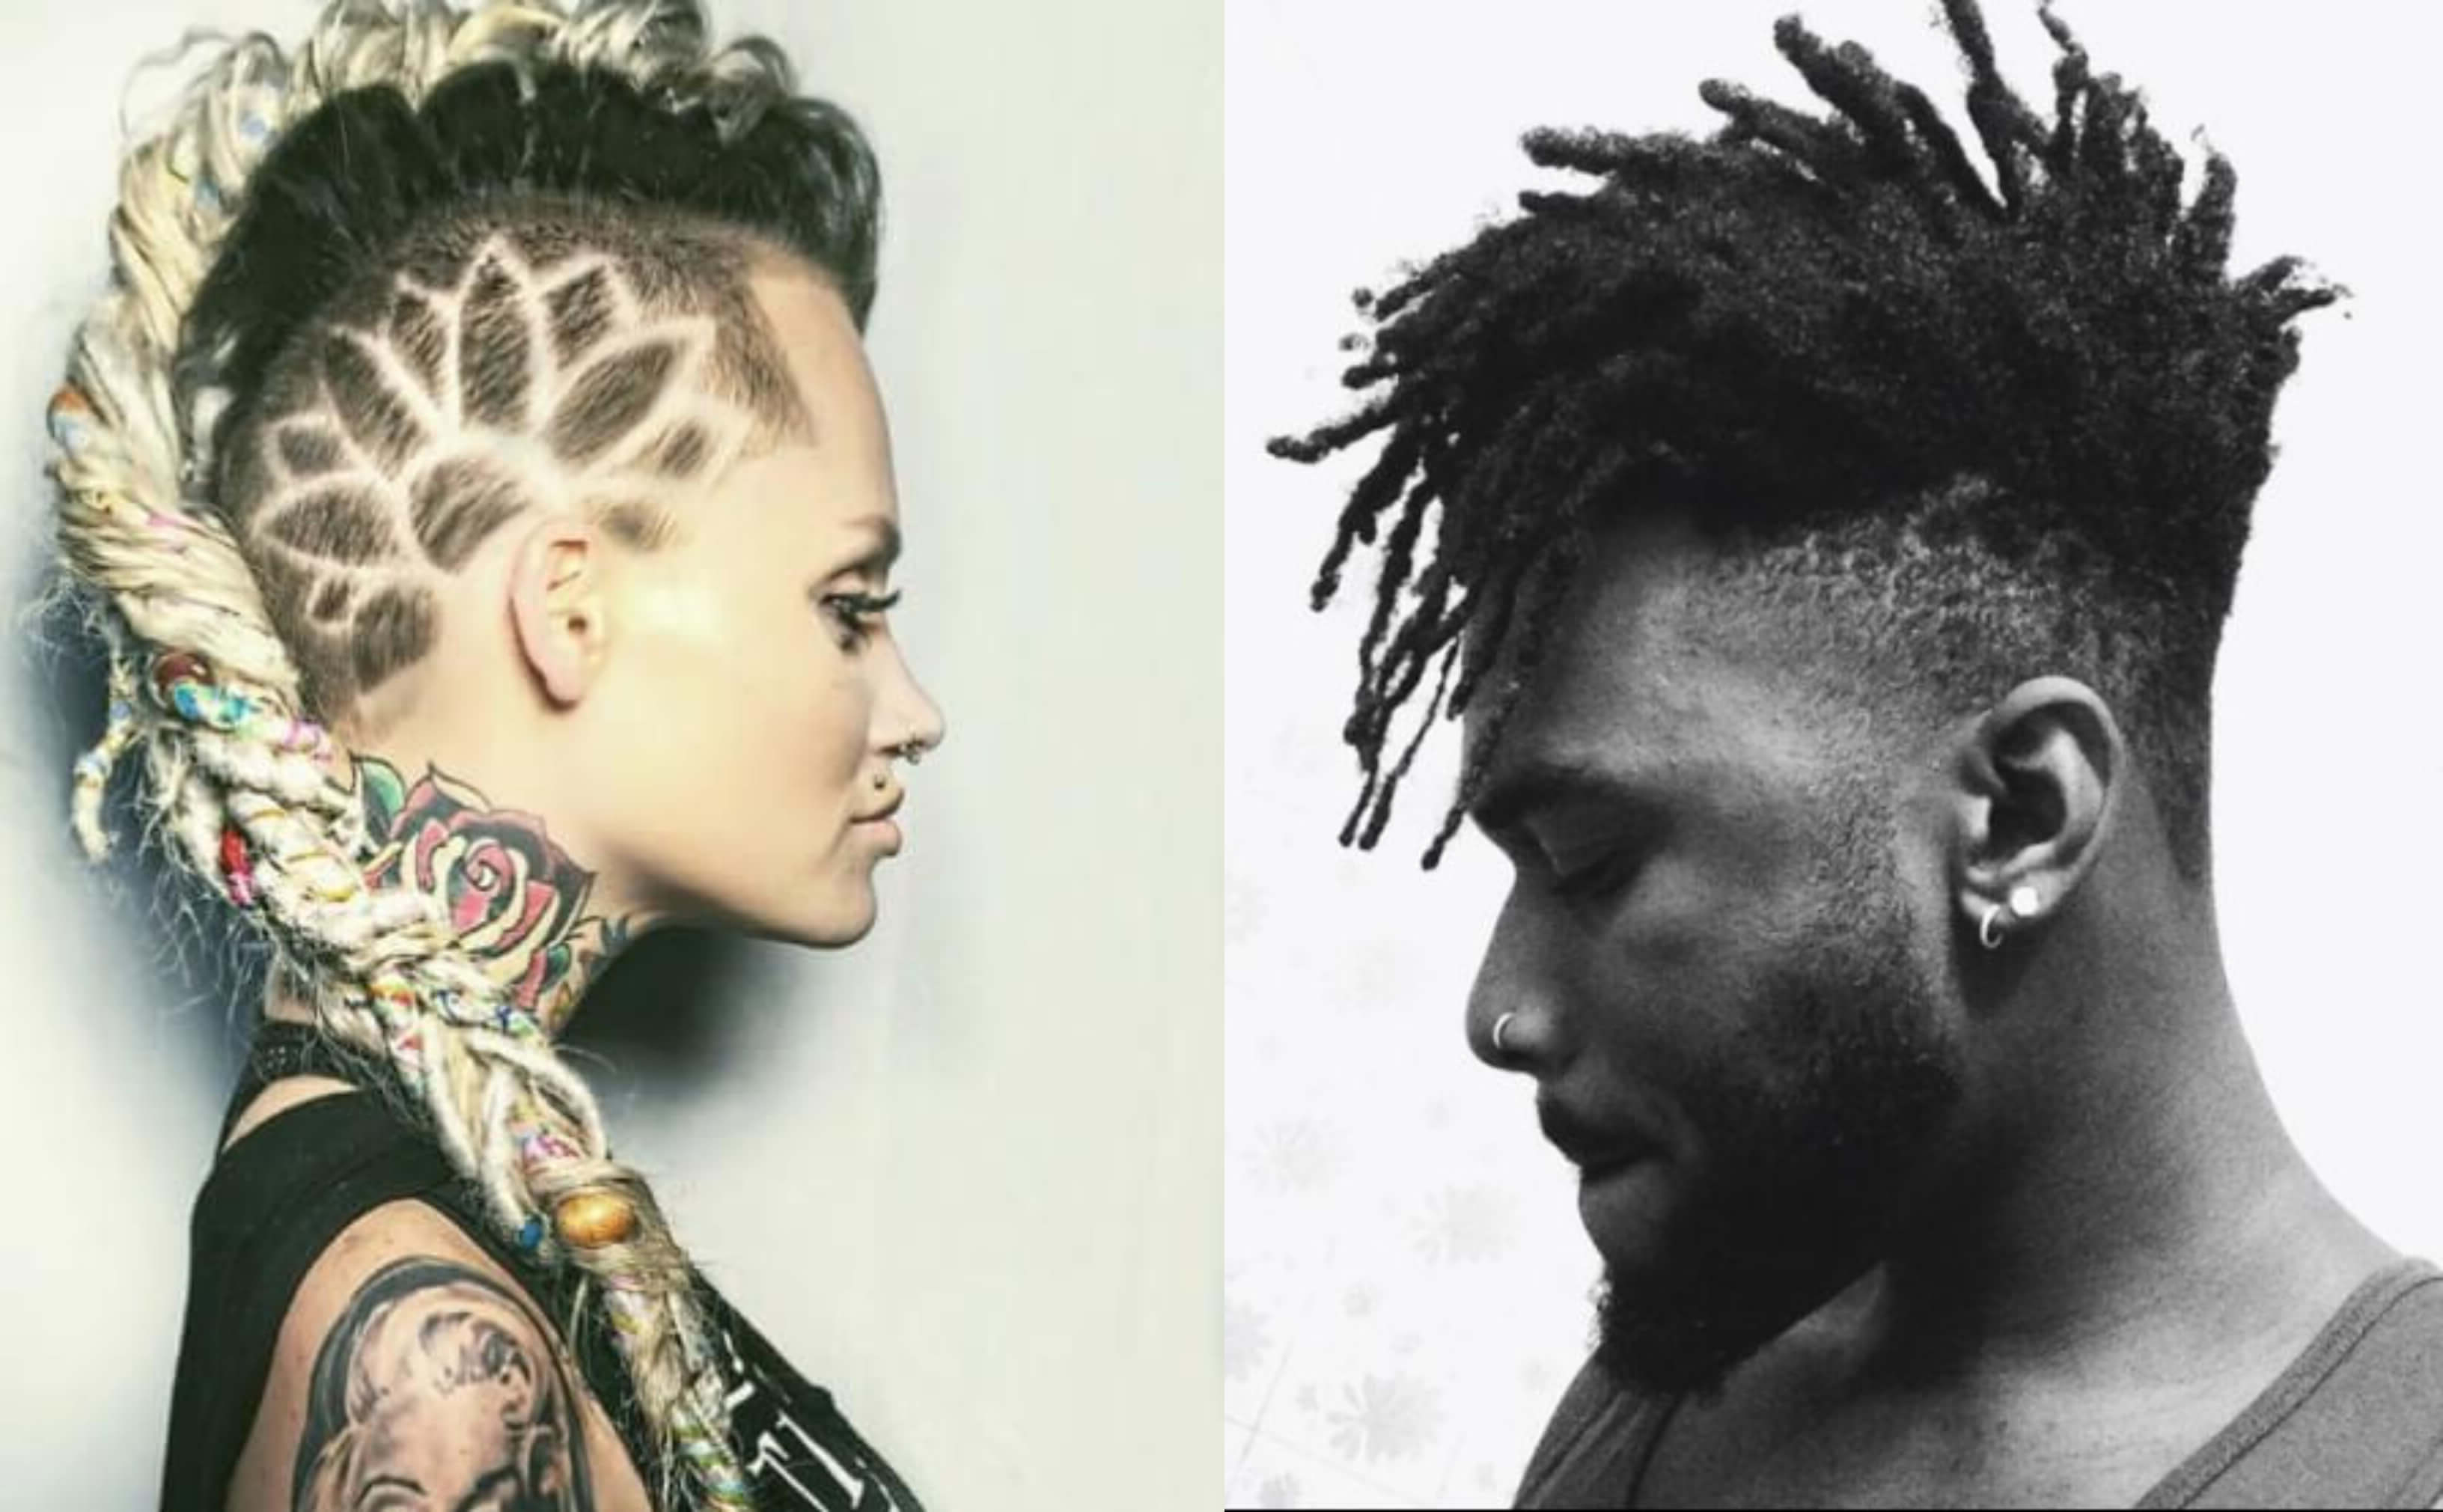 The Coolest Mohawk Dreads Styles – Love Locs Natural Intended For 2020 Dreadlocked Mohawk Hairstyles For Women (View 14 of 20)